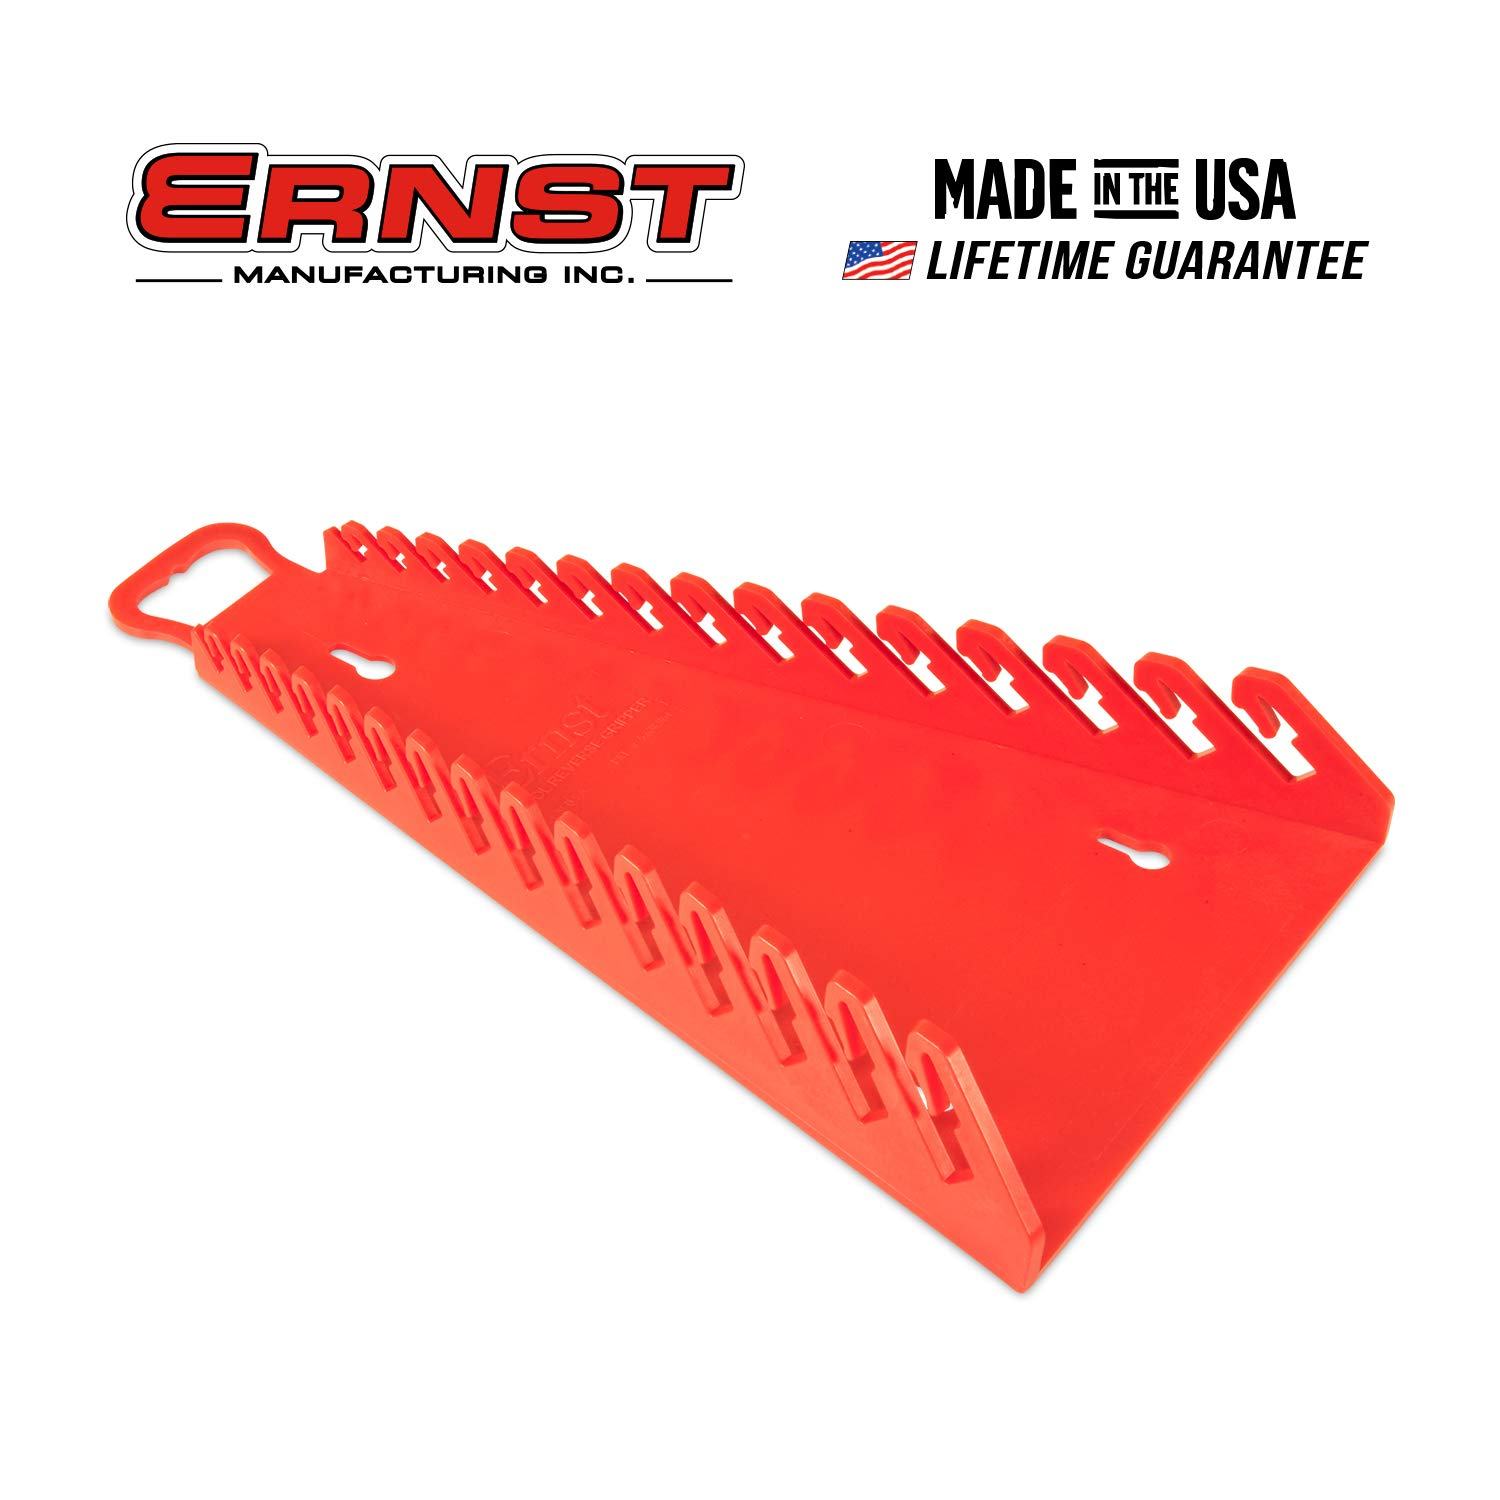 Ernst Manufacturing 5188-Red Gripper Reverse Wrench Organizer, 15 Tool, Red